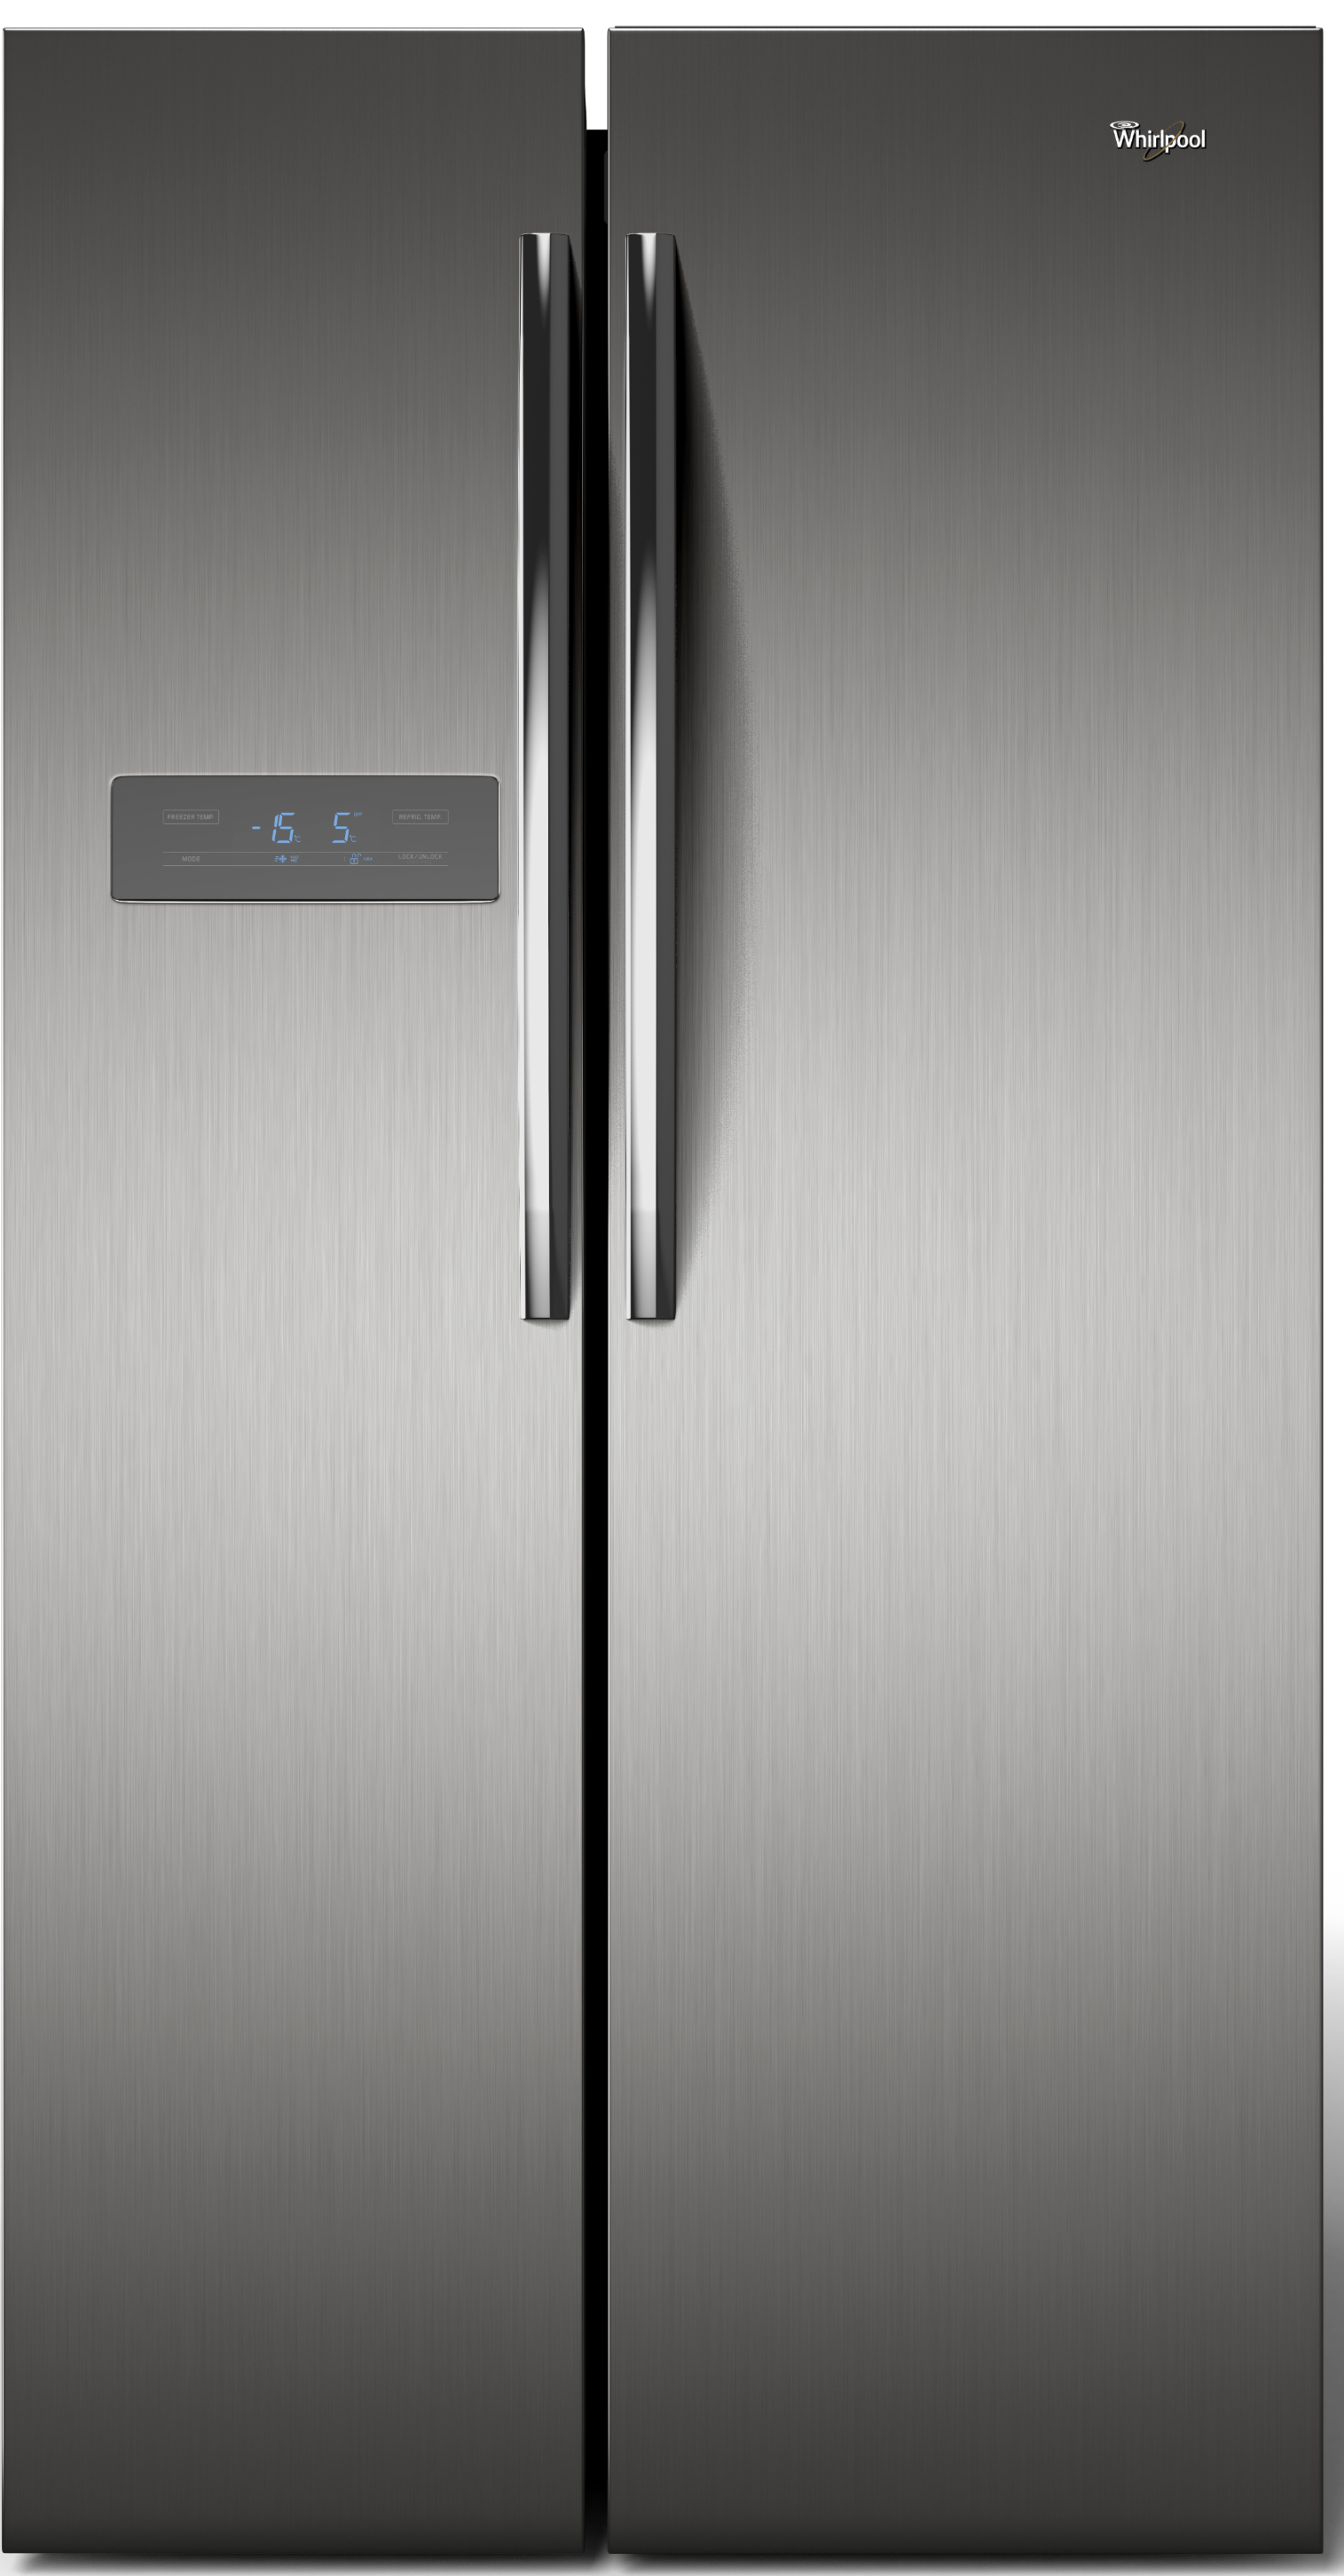 wrs49aktww chile refrigerador side by side whirlpool select 527 lts. Black Bedroom Furniture Sets. Home Design Ideas